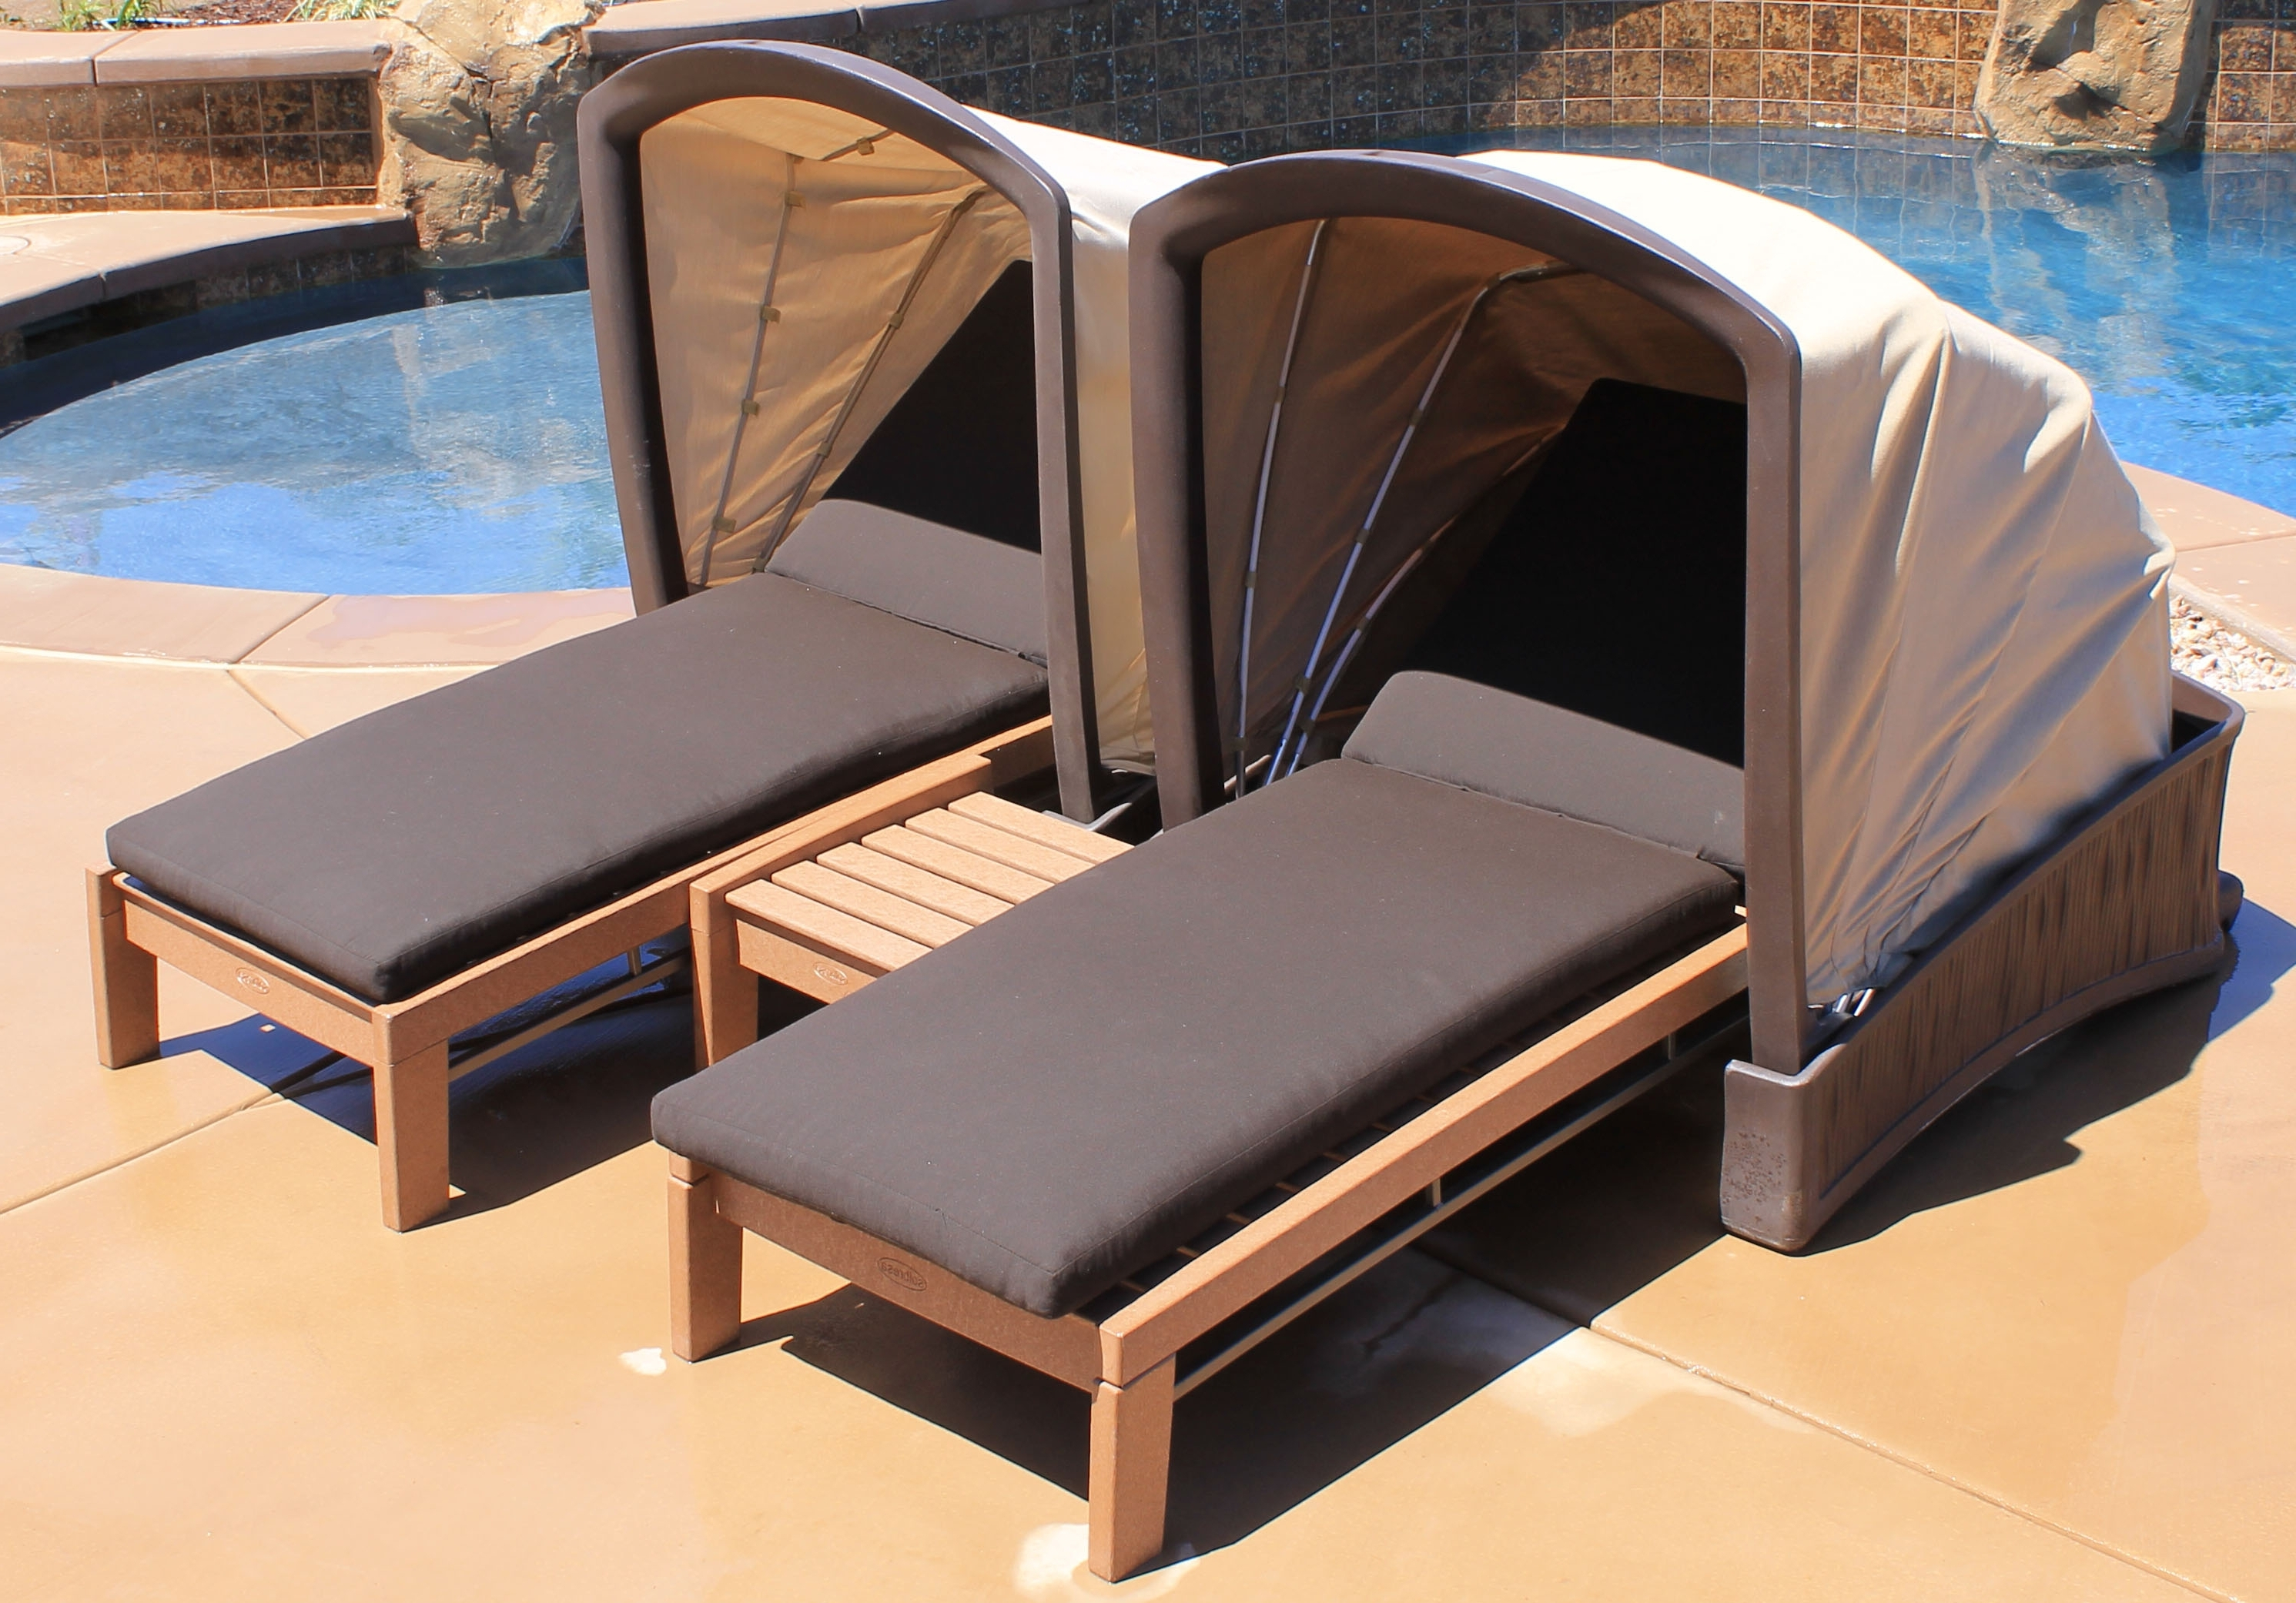 Fashionable Hotel Outdoor Lounge Chairs • Lounge Chairs Ideas For Hotel Pool Chaise Lounge Chairs (View 2 of 15)